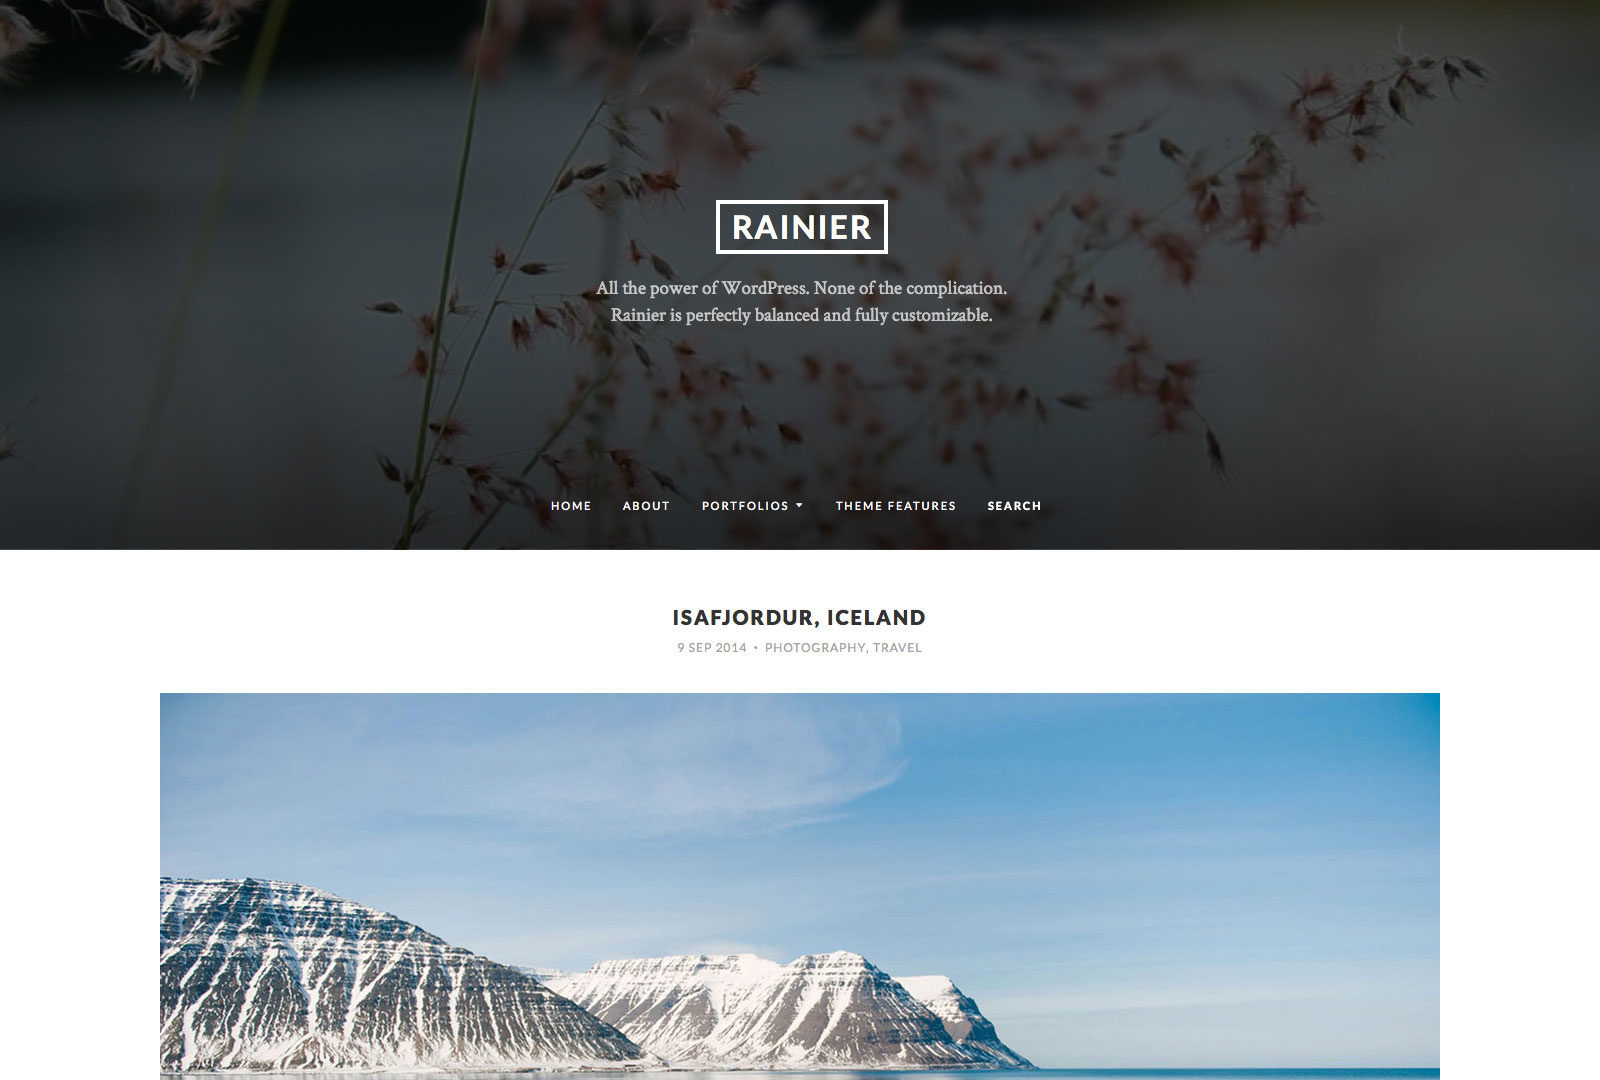 Rainier WordPress Theme